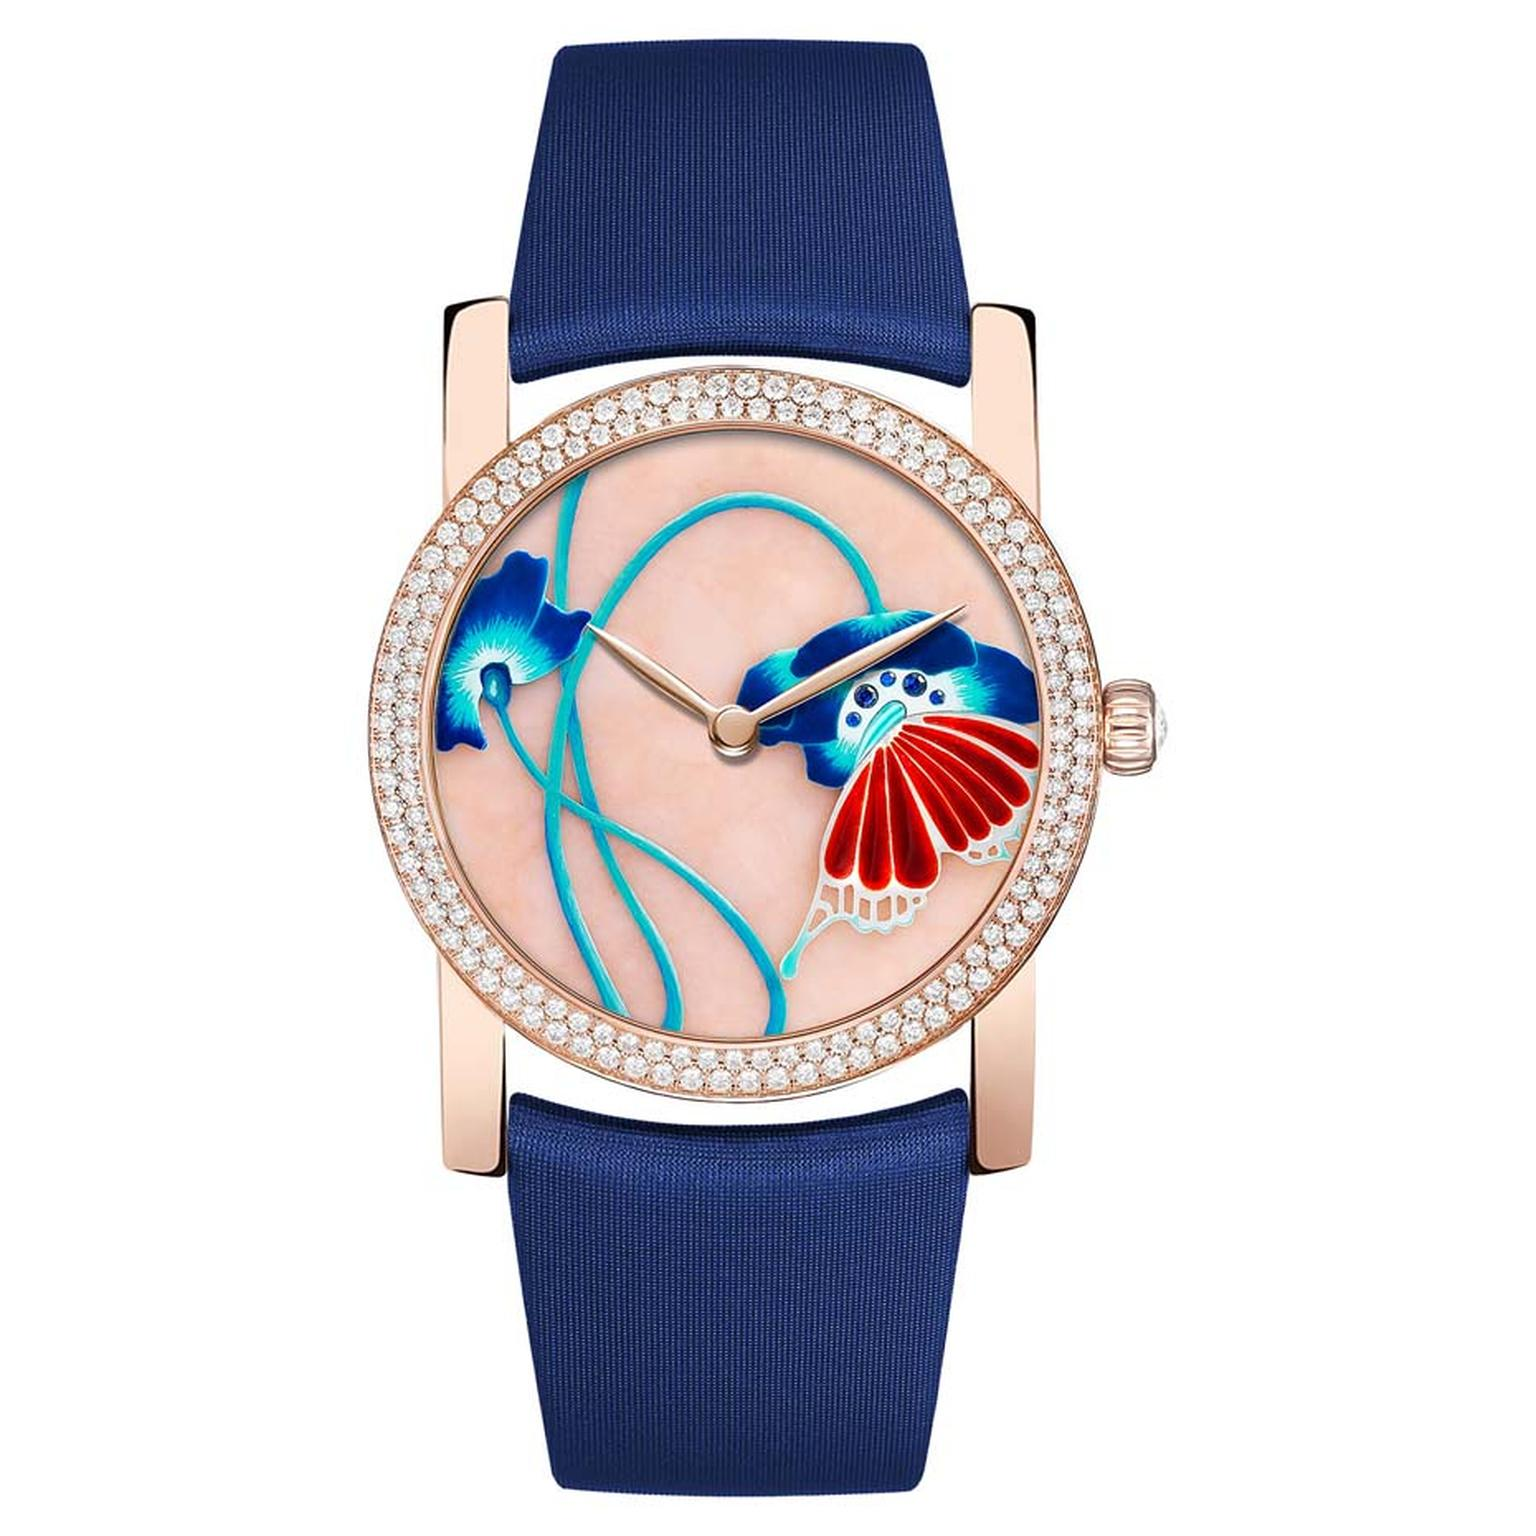 Chaumet Attrape-moi…si tu m'aimes collection watch with a polished pink opal base featuring enamel poppy flowers